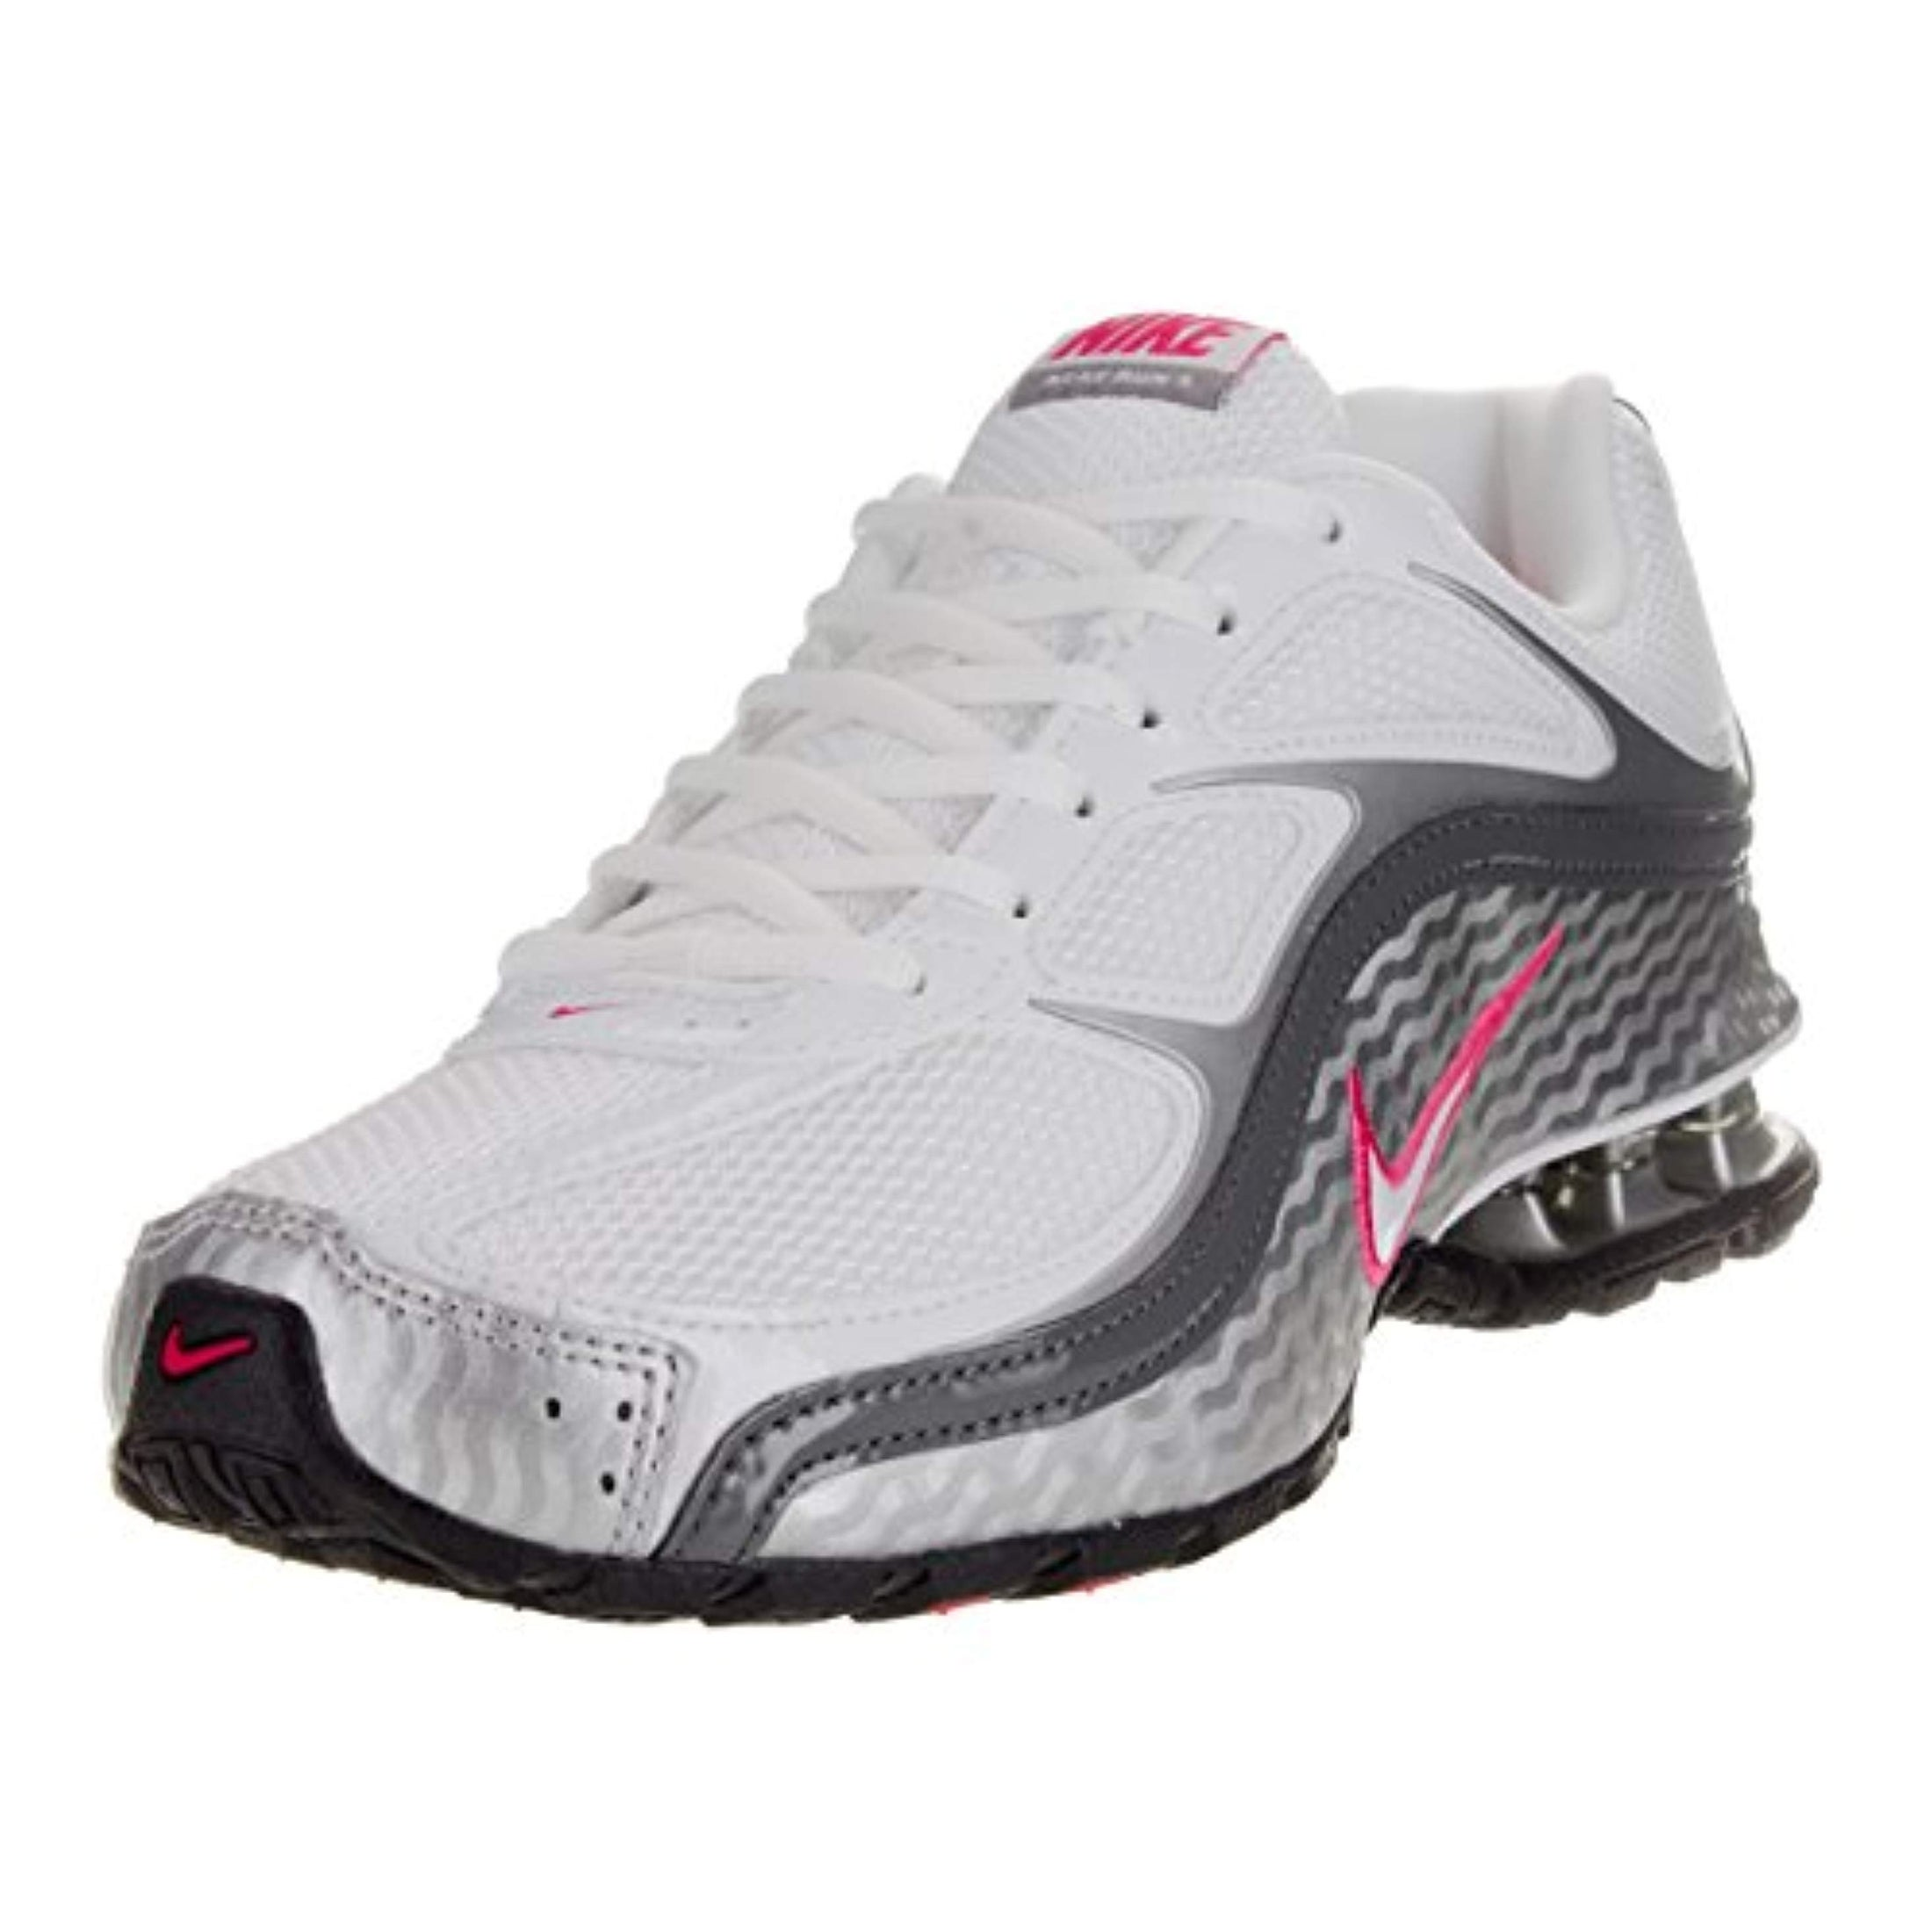 0316e1bb96e Buy Women s Athletic Shoes Online at Overstock